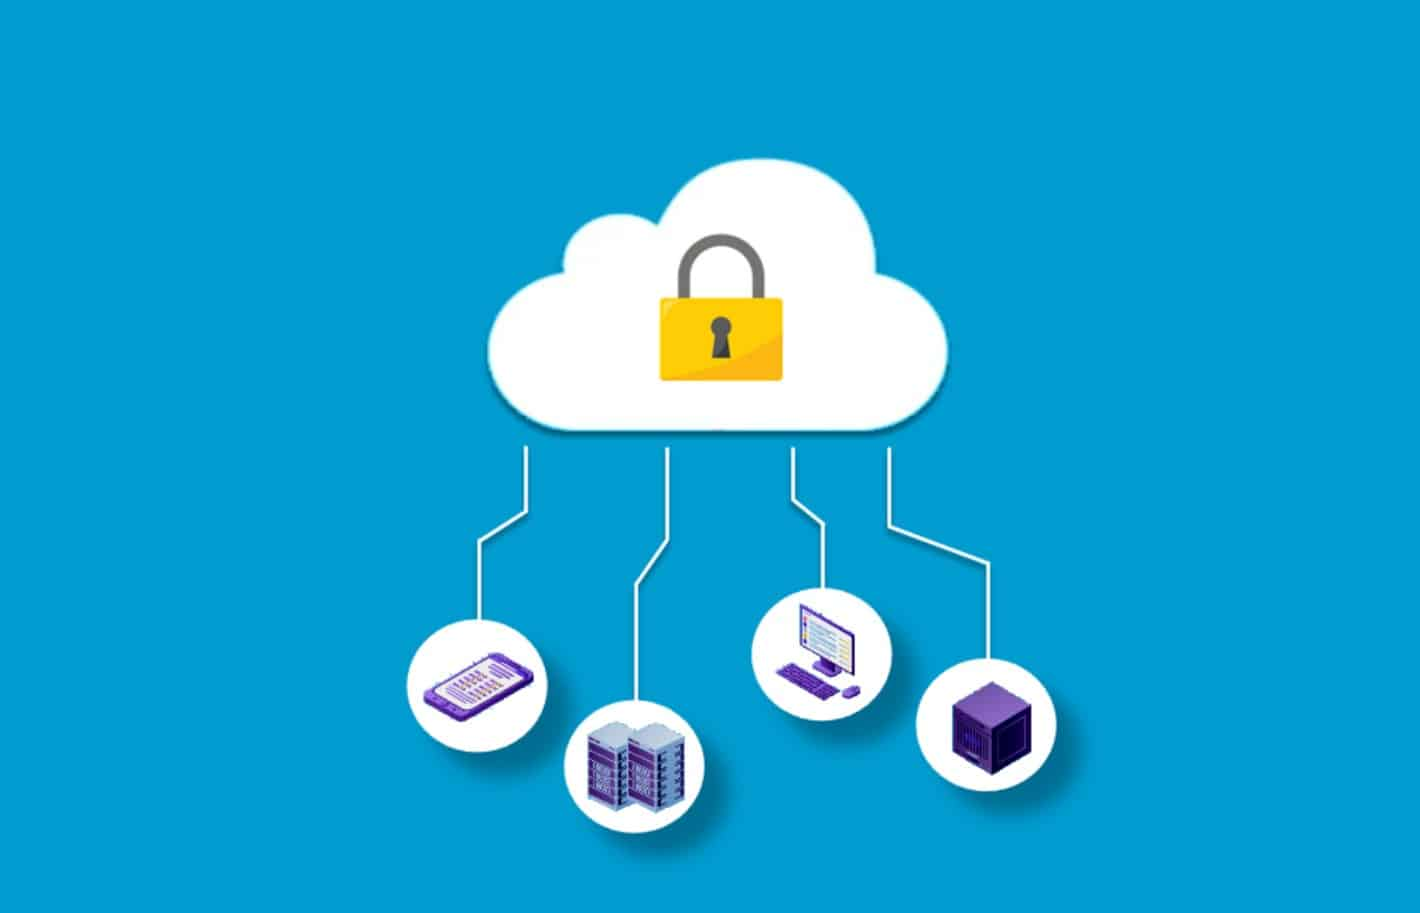 Cloud Computing Security Issues And Challenges Businesstechweekly Com